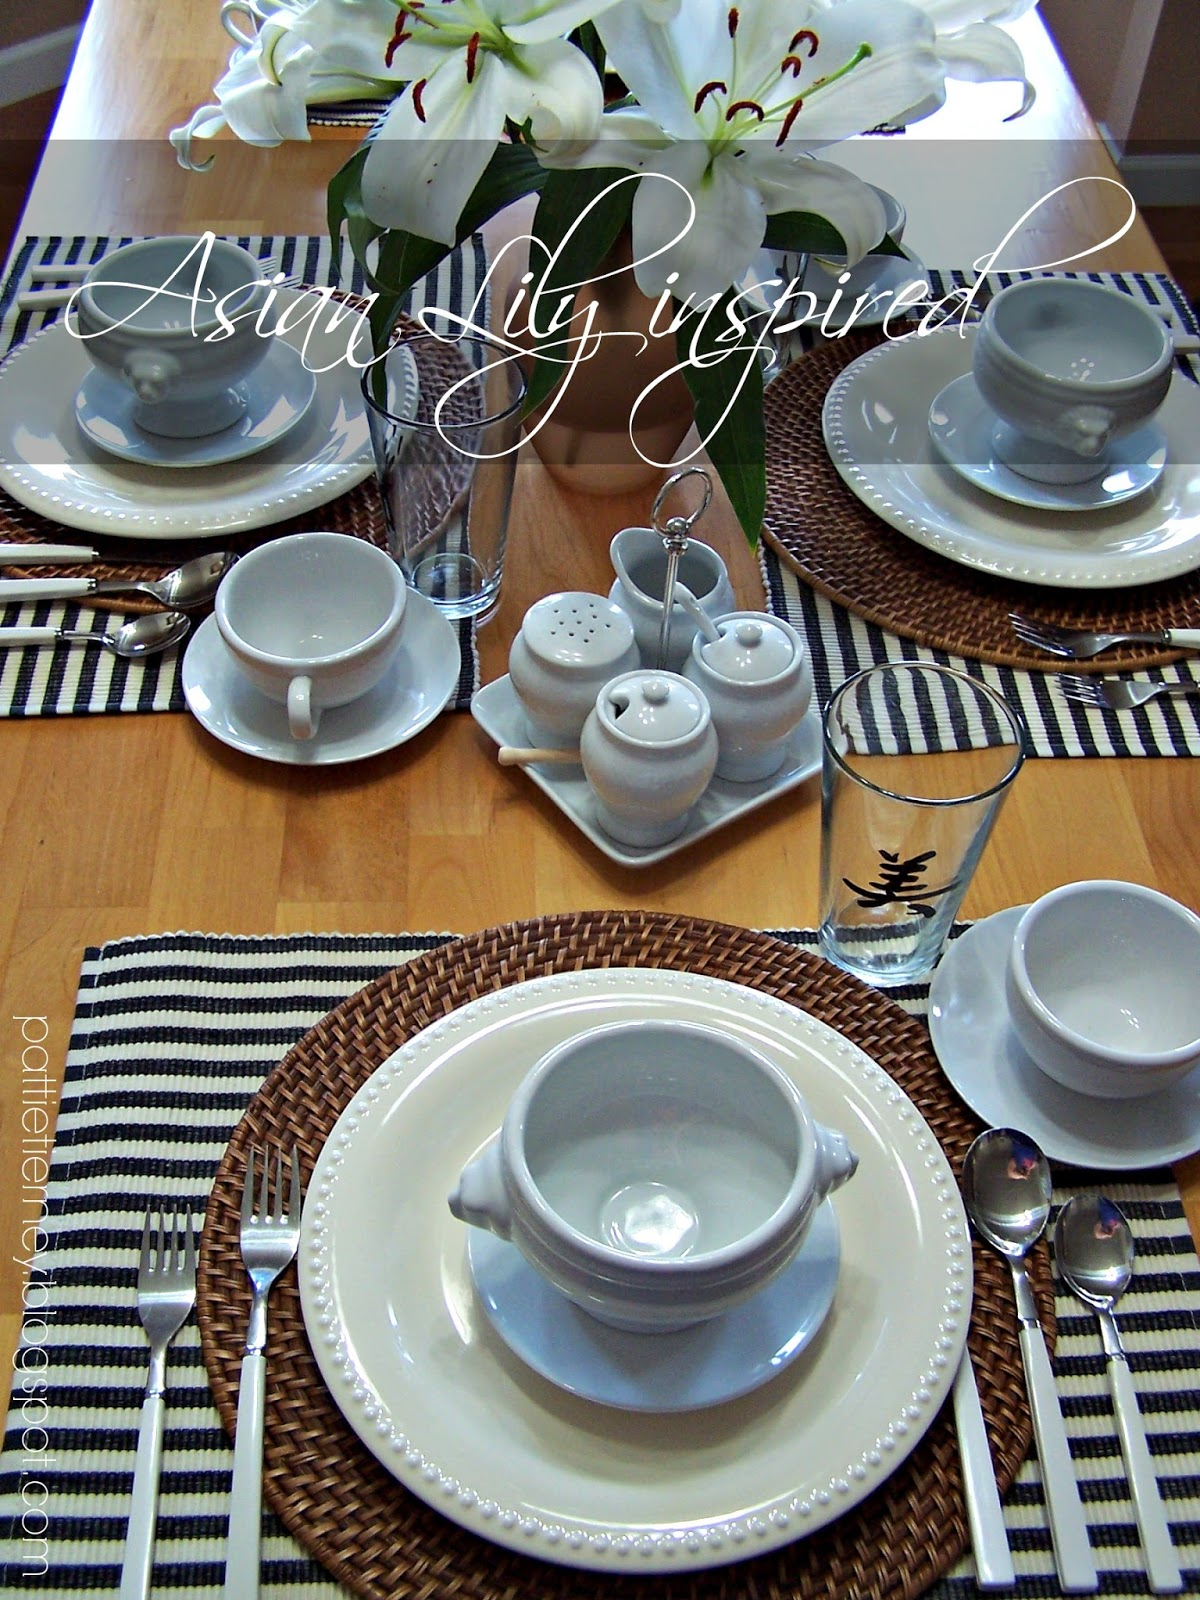 Asian Lily-Inspired Tablescape & Olla-Podrida: Asian Lily-Inspired Tablescape